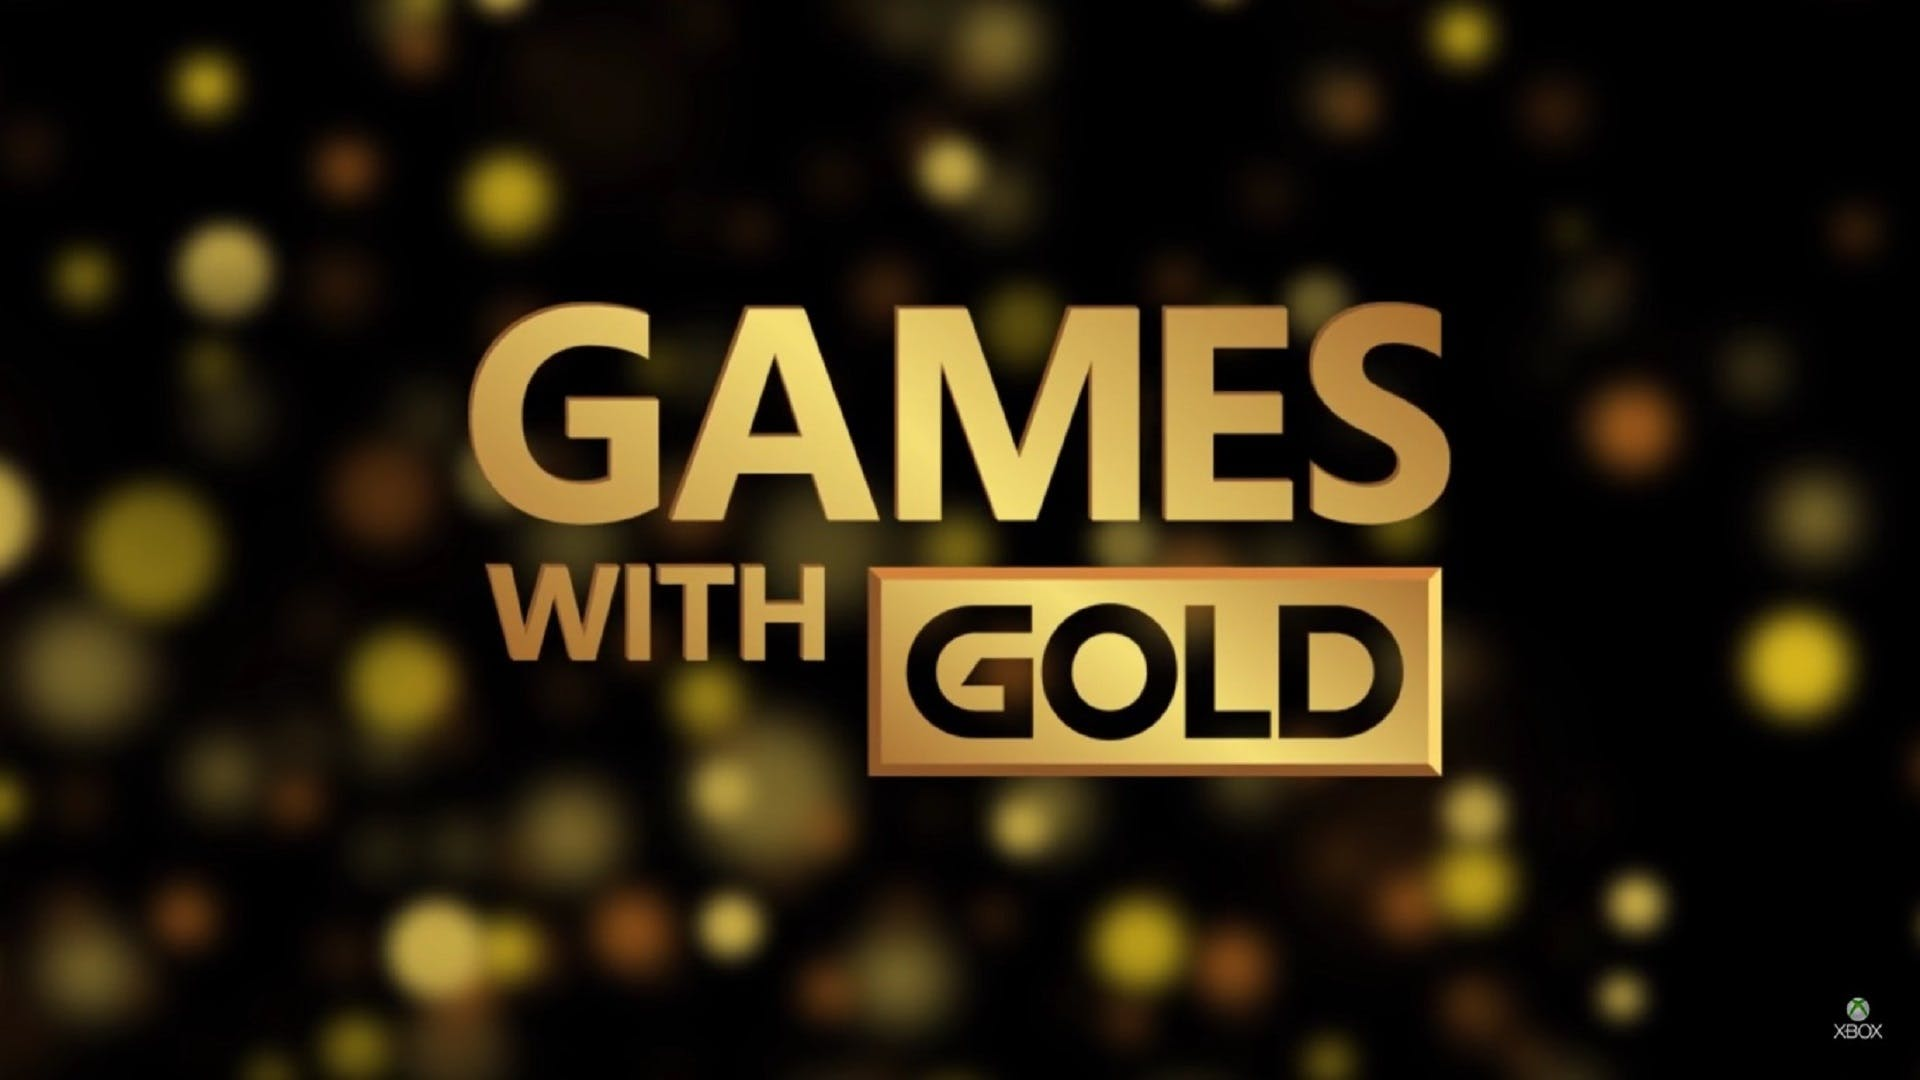 Xbox Games With Gold For February 2020 Revealed